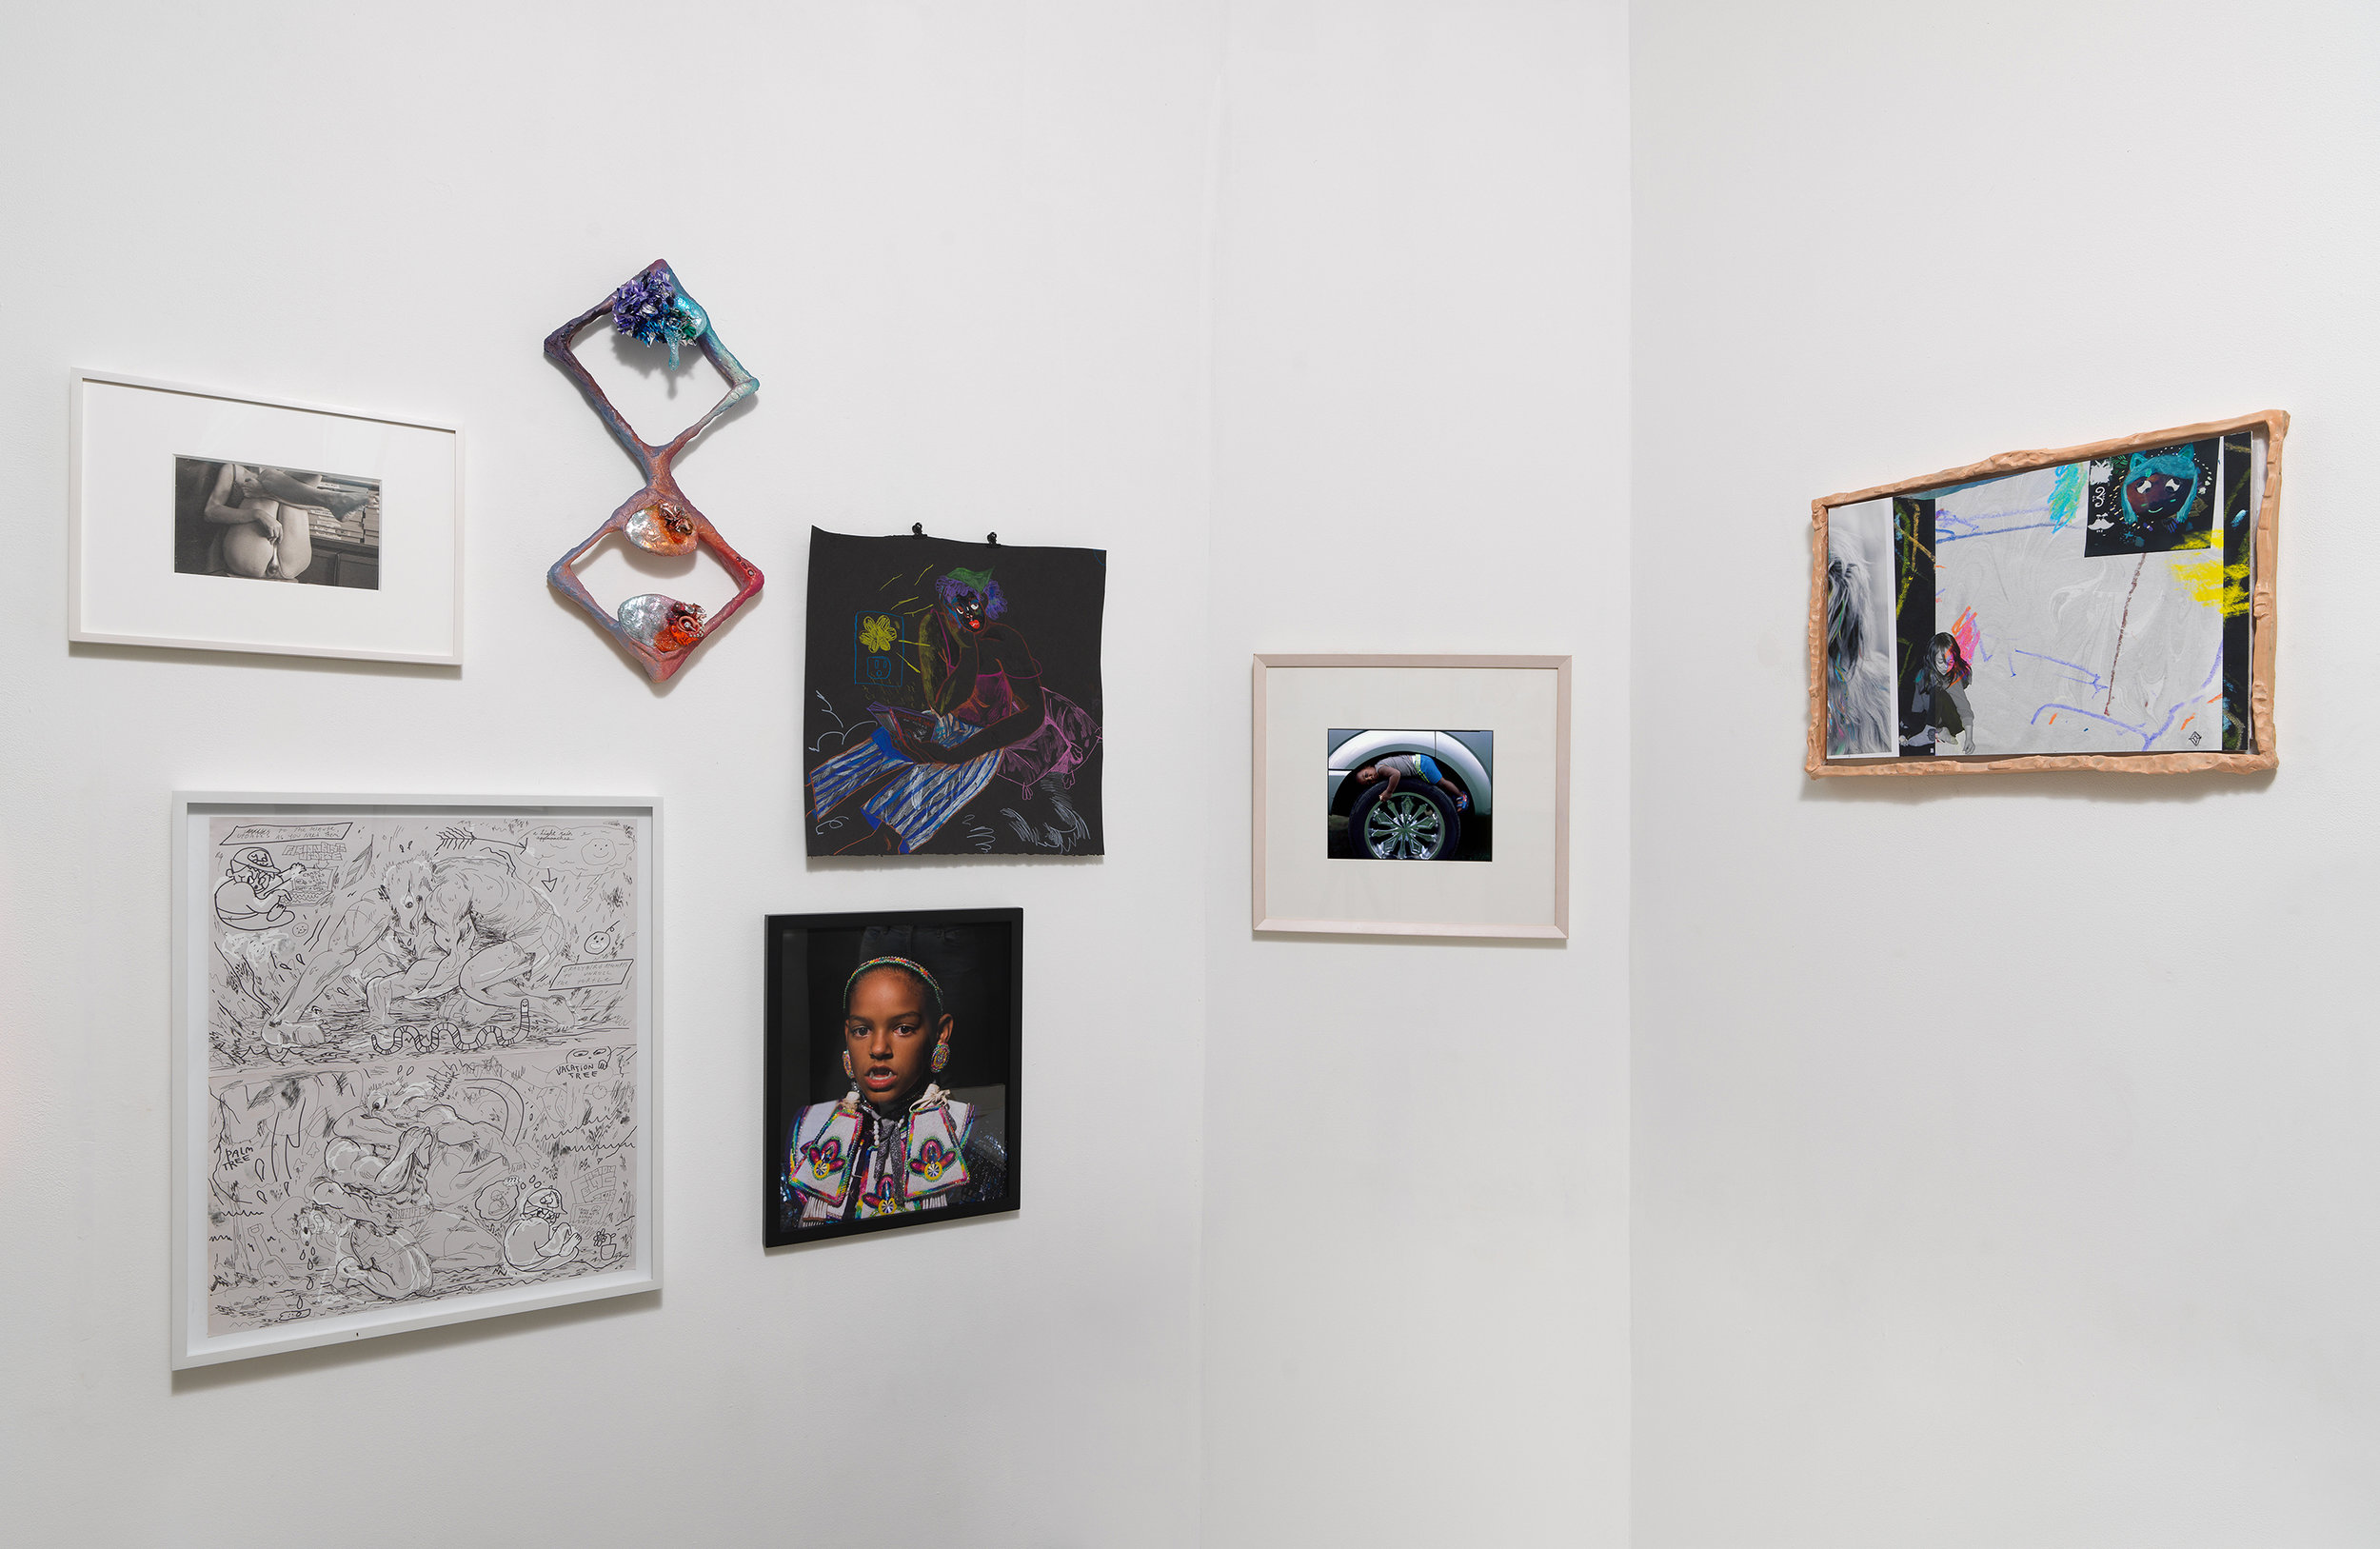 Installation view of 'Can You Dream It' featuring salon-style hanging of multimedia works by various artists